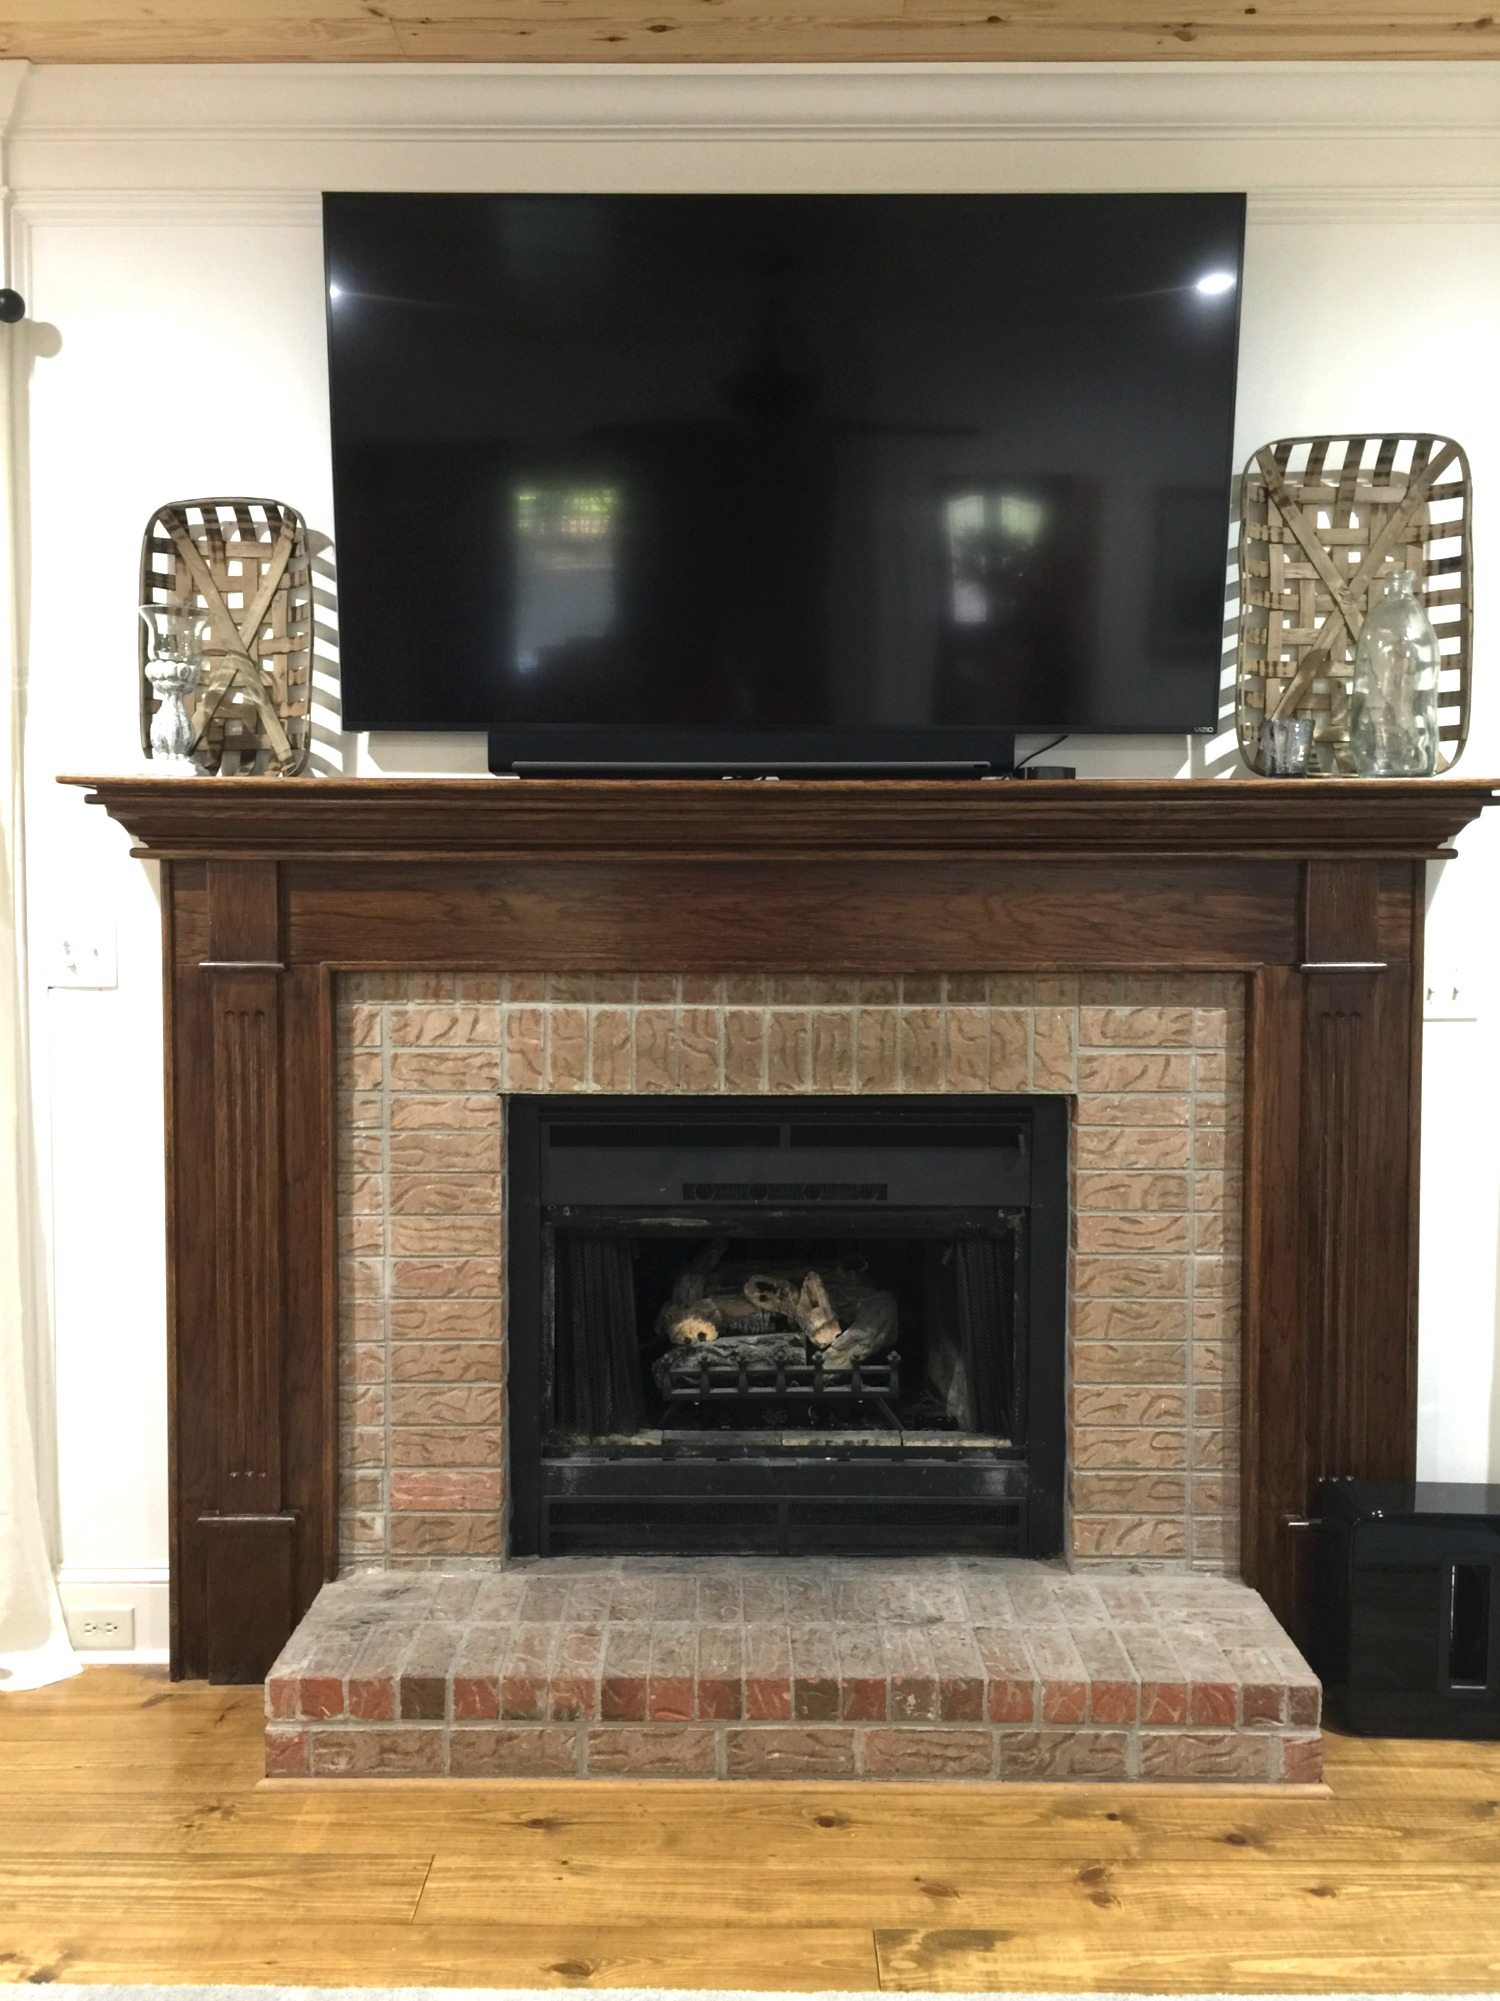 Brick Fireplace Wood Mantel Got Ugly Brick How To Paint Fireplace Mantel